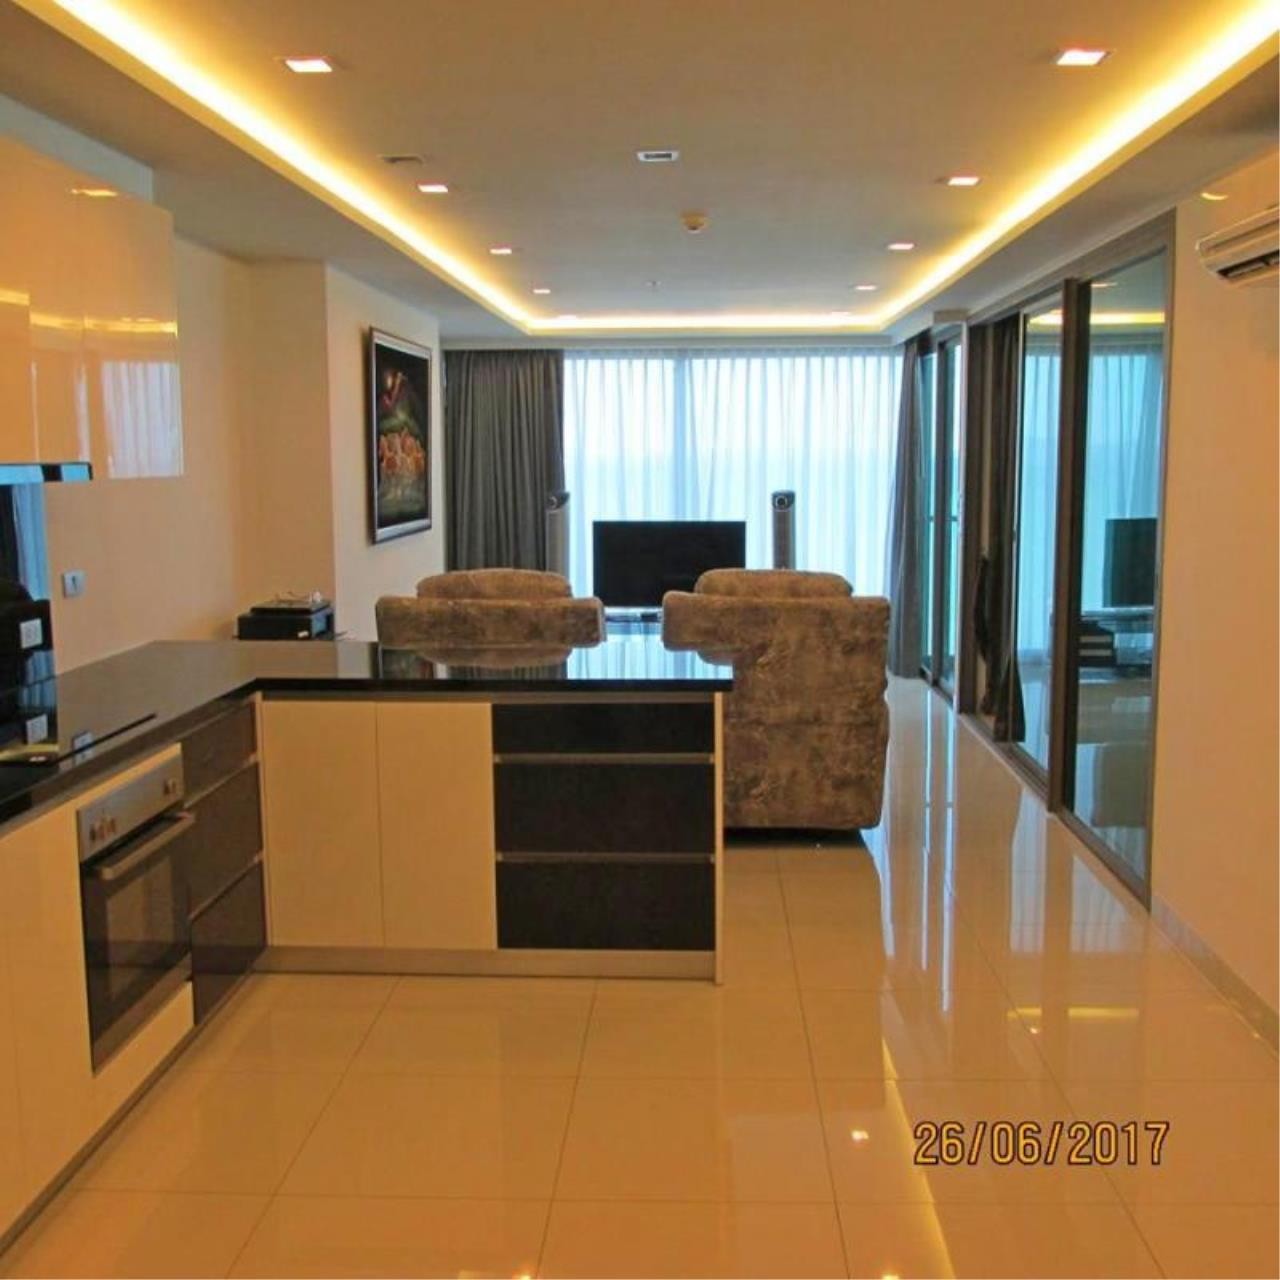 RE/MAX Town & Country Property Agency's Luxury beachfront condo in Wongamat 4